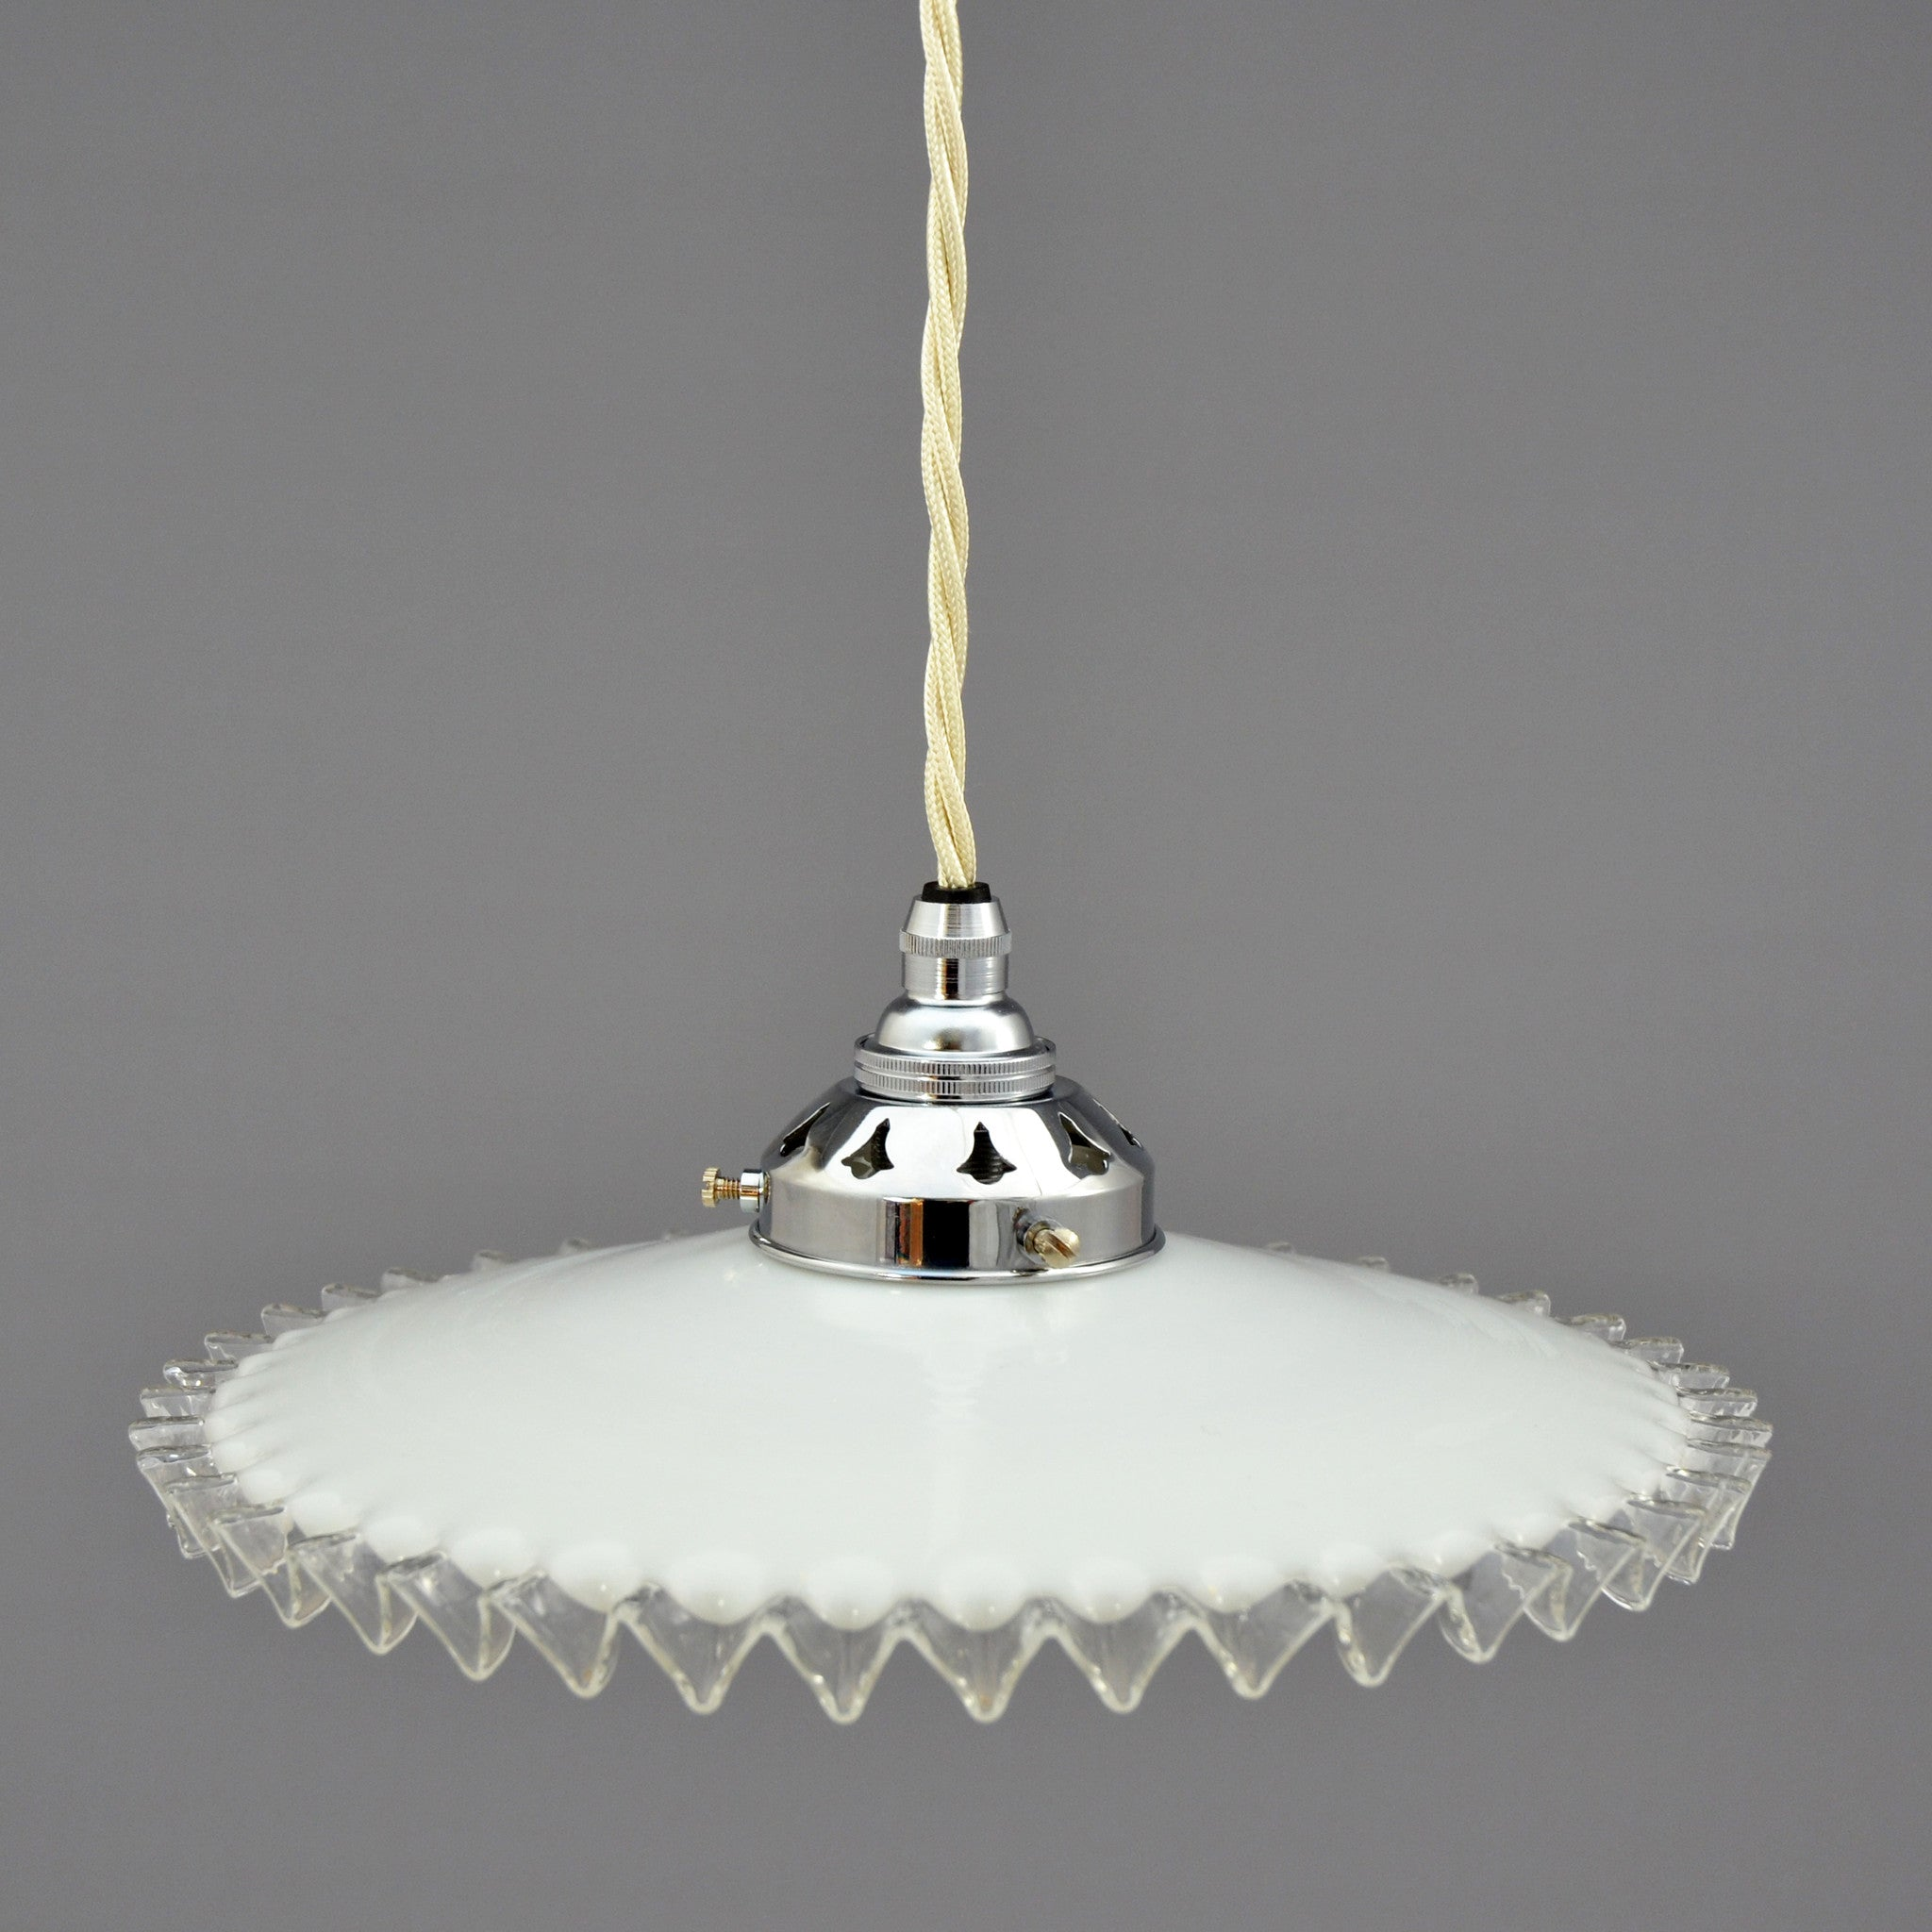 French white glass Ceiling Light/Pendant Light shade with clear glass frill